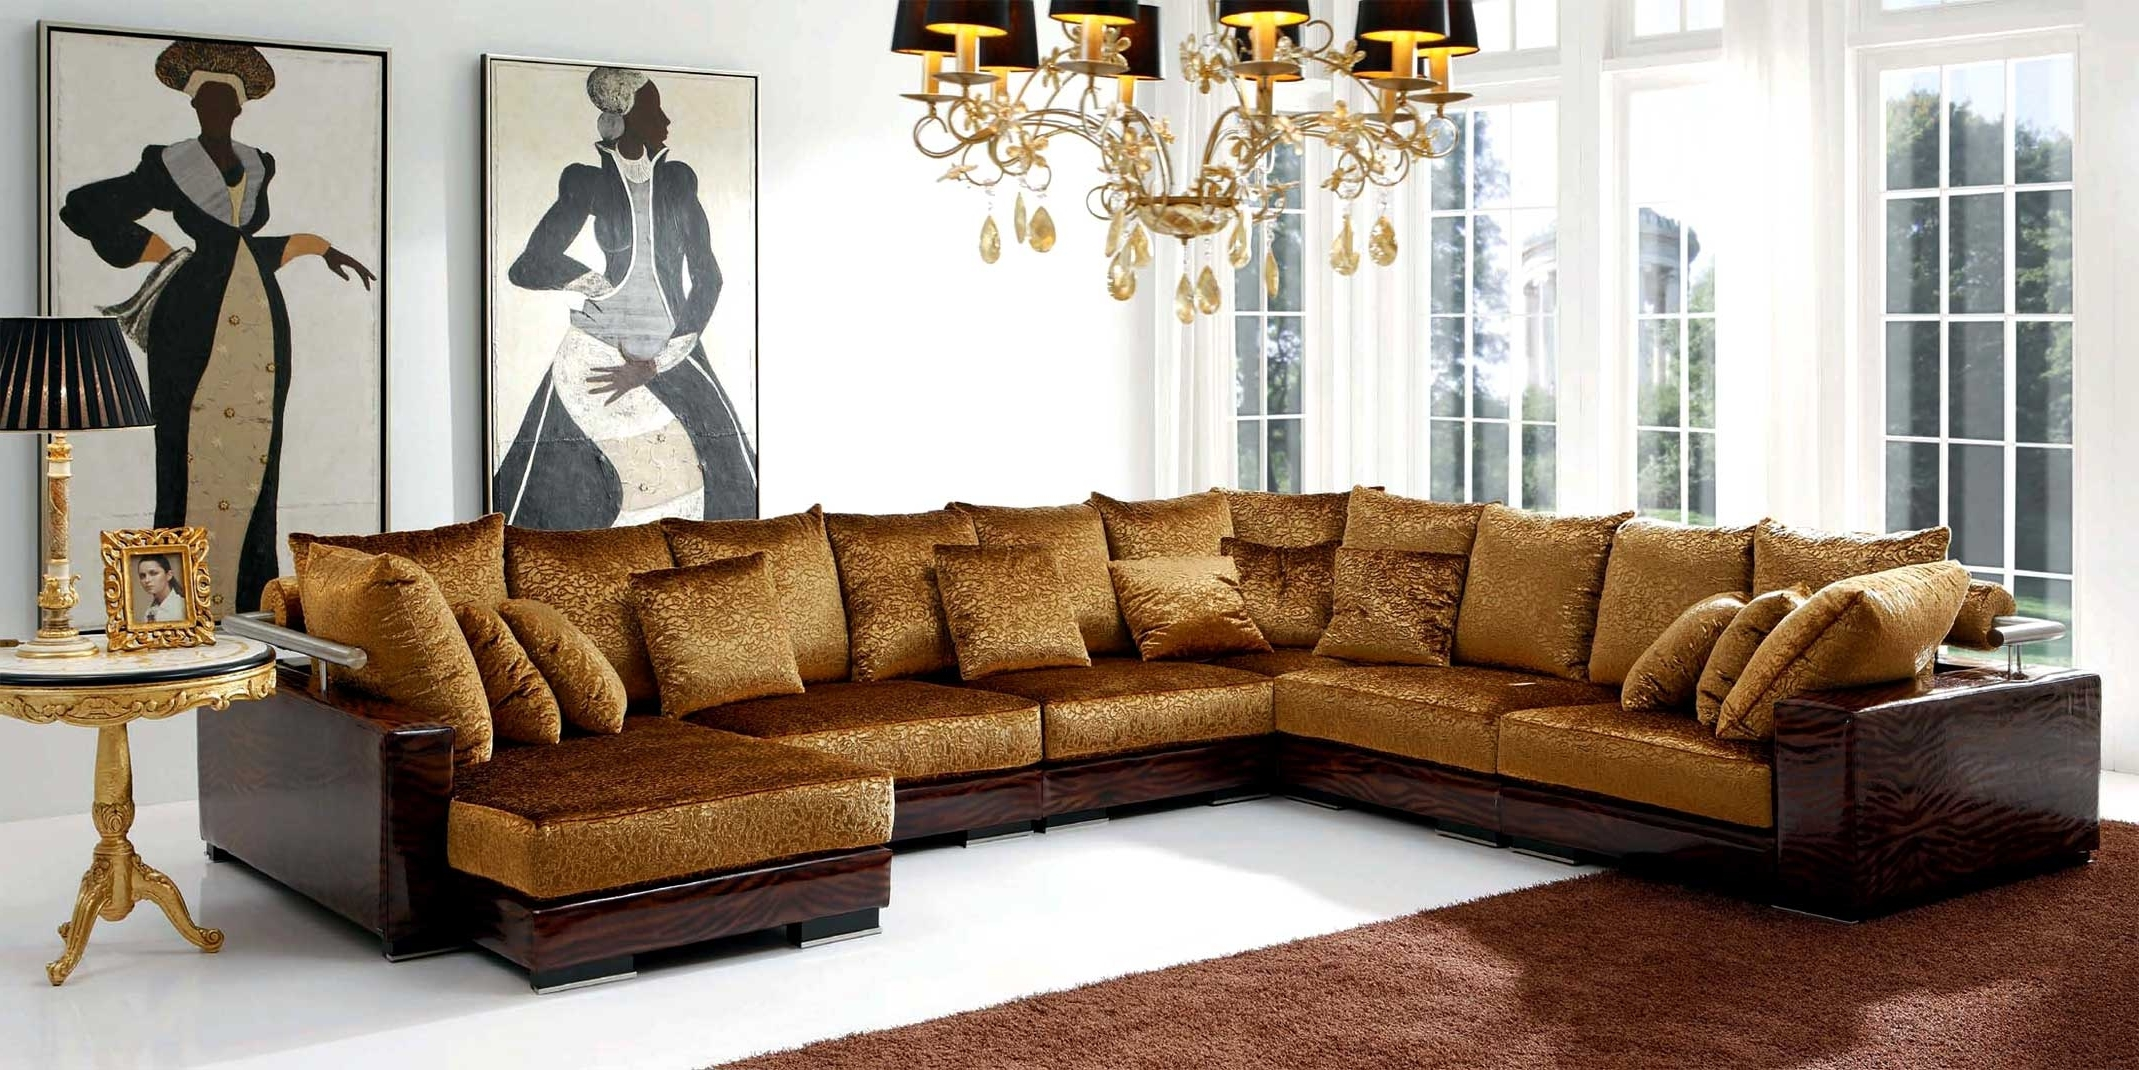 2018 Gold Sectional Sofas Pertaining To Luxury Furniture Brands (View 12 of 20)